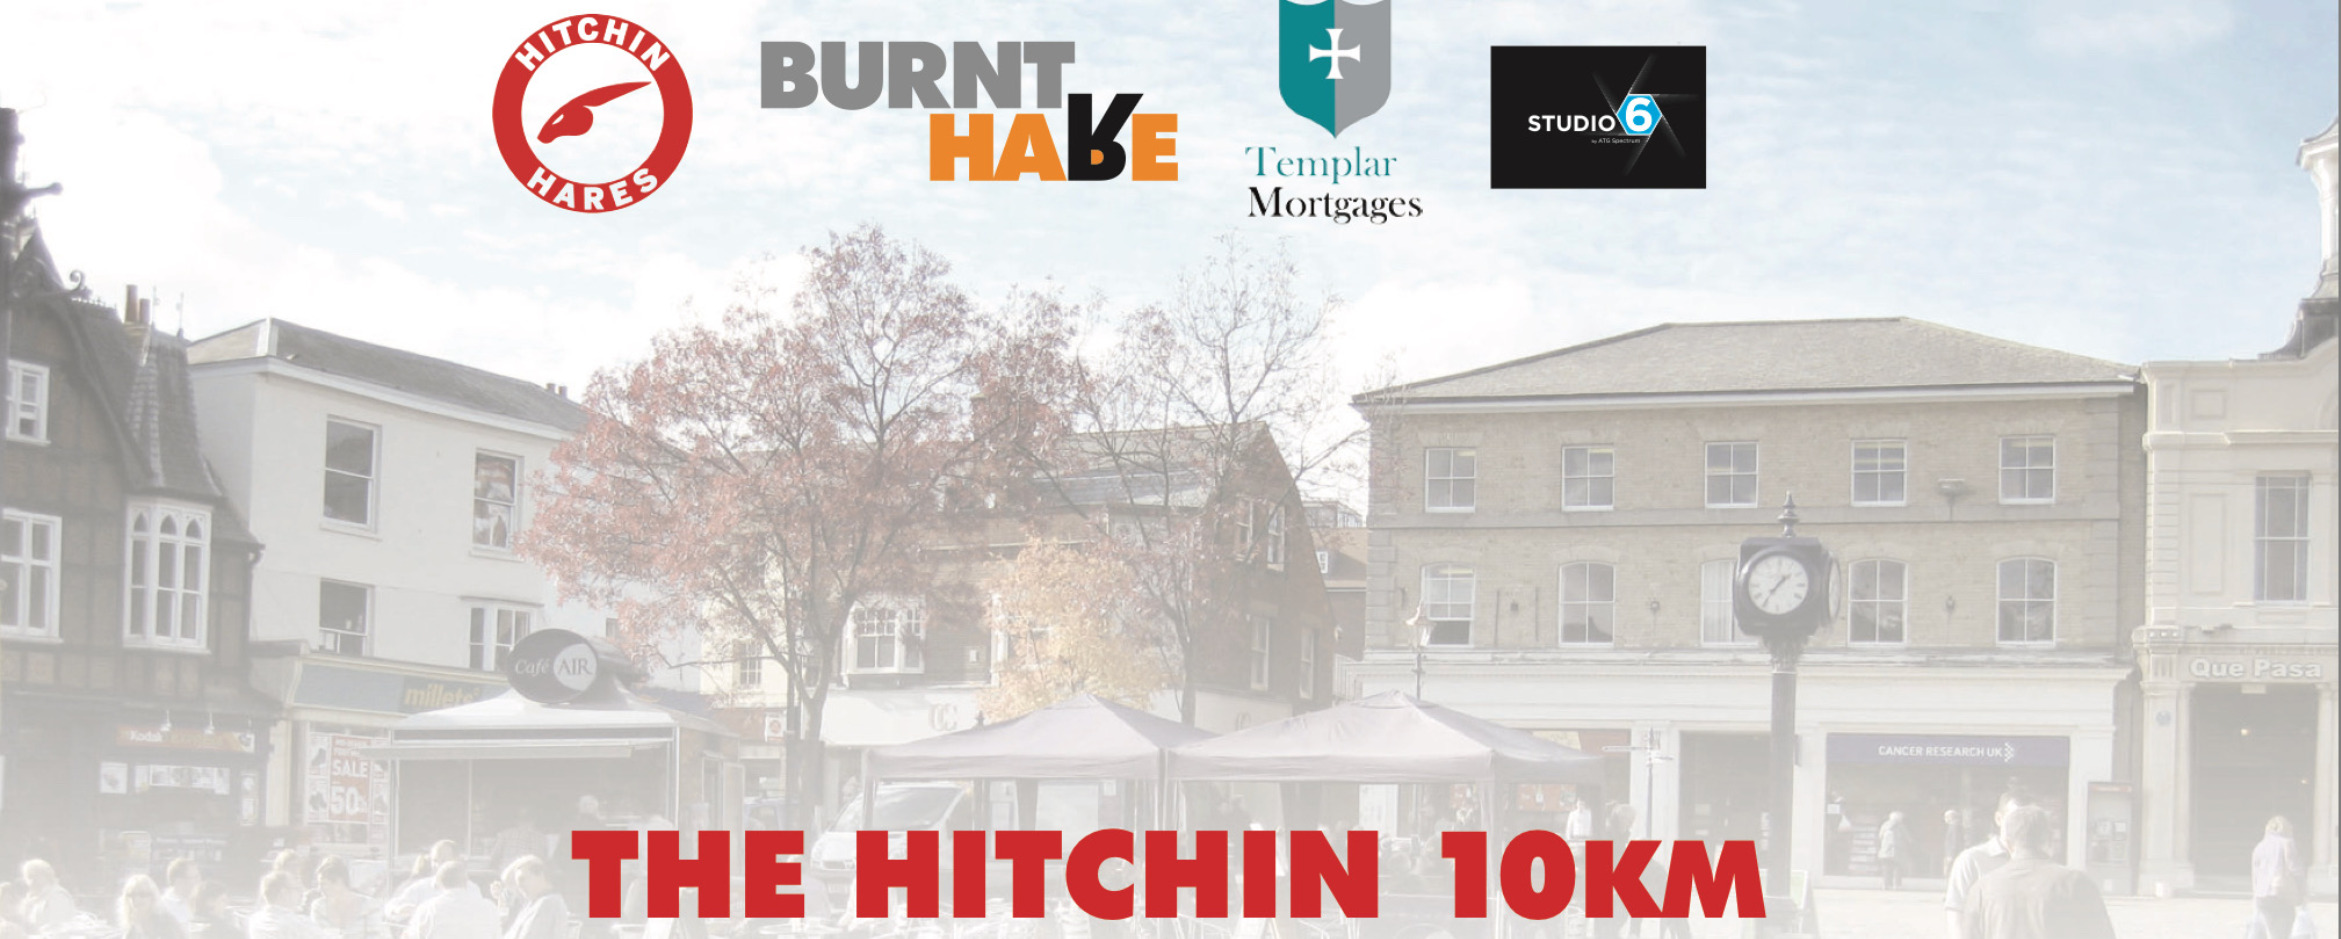 Hitchin 10km - cover image